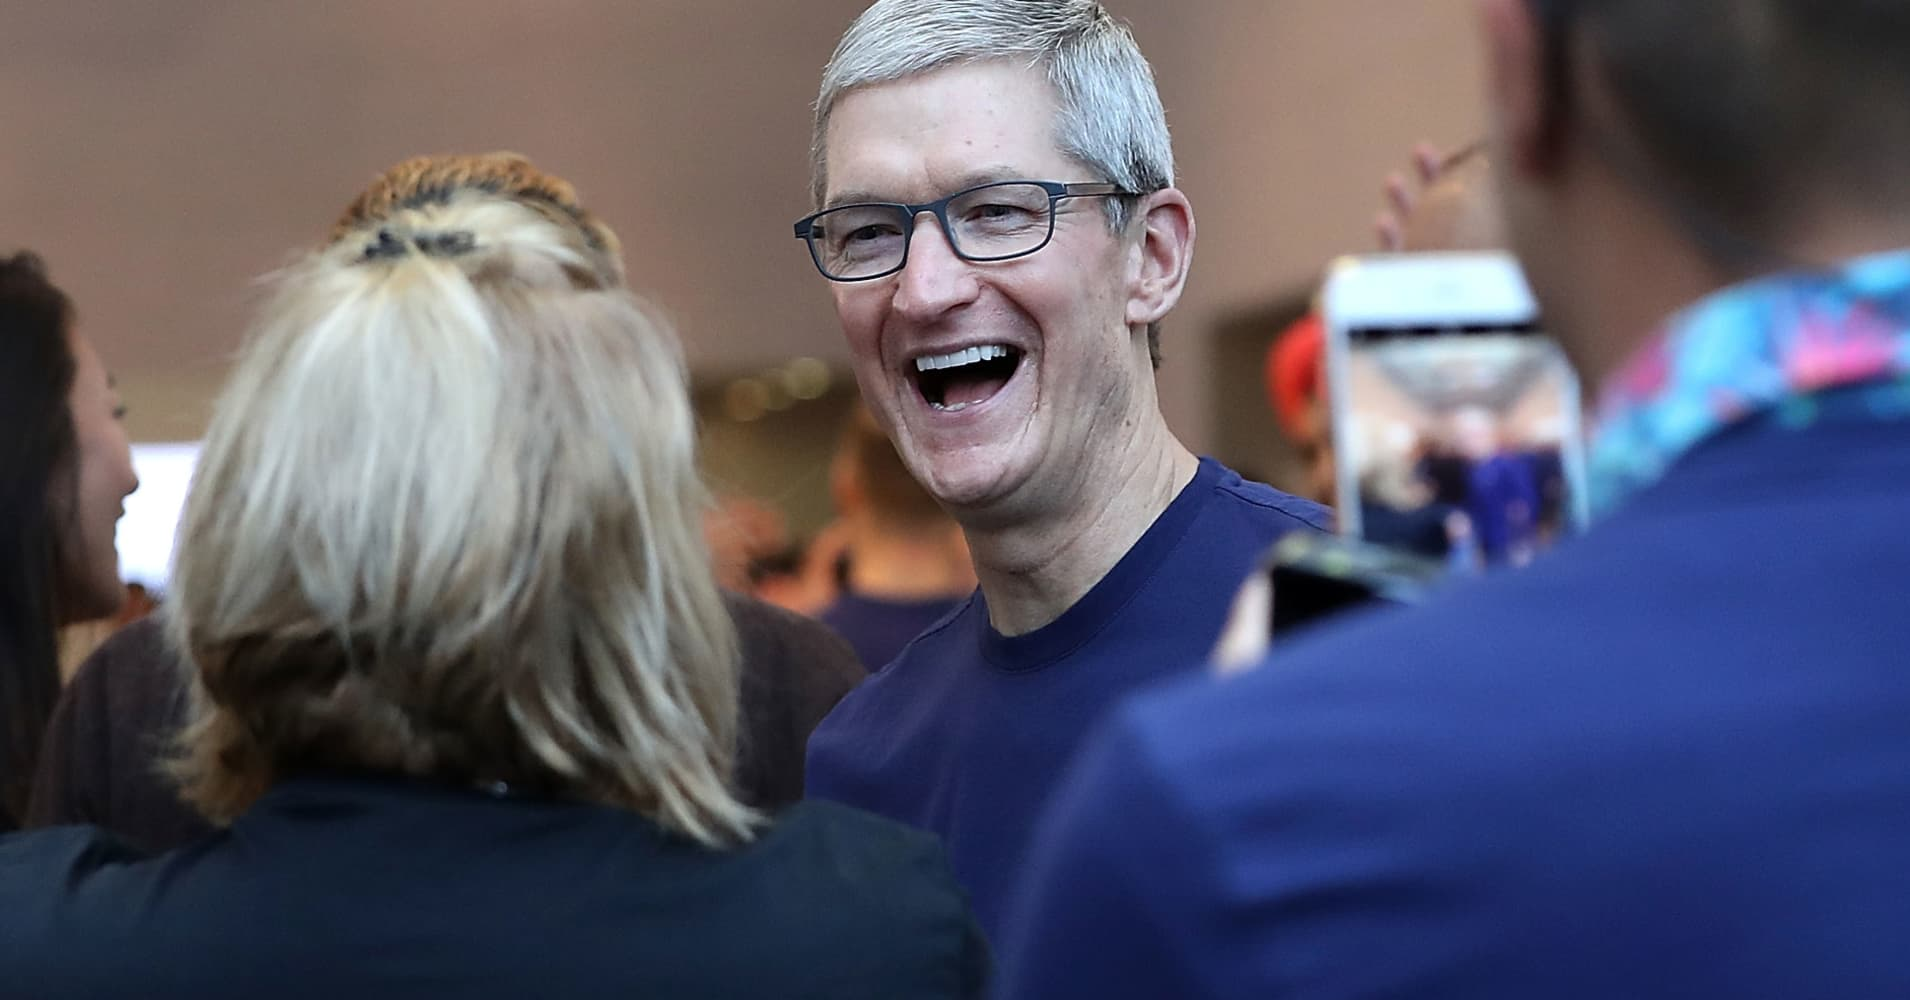 Apple becomes the first company in History to reach $1 Trillion market capitalization